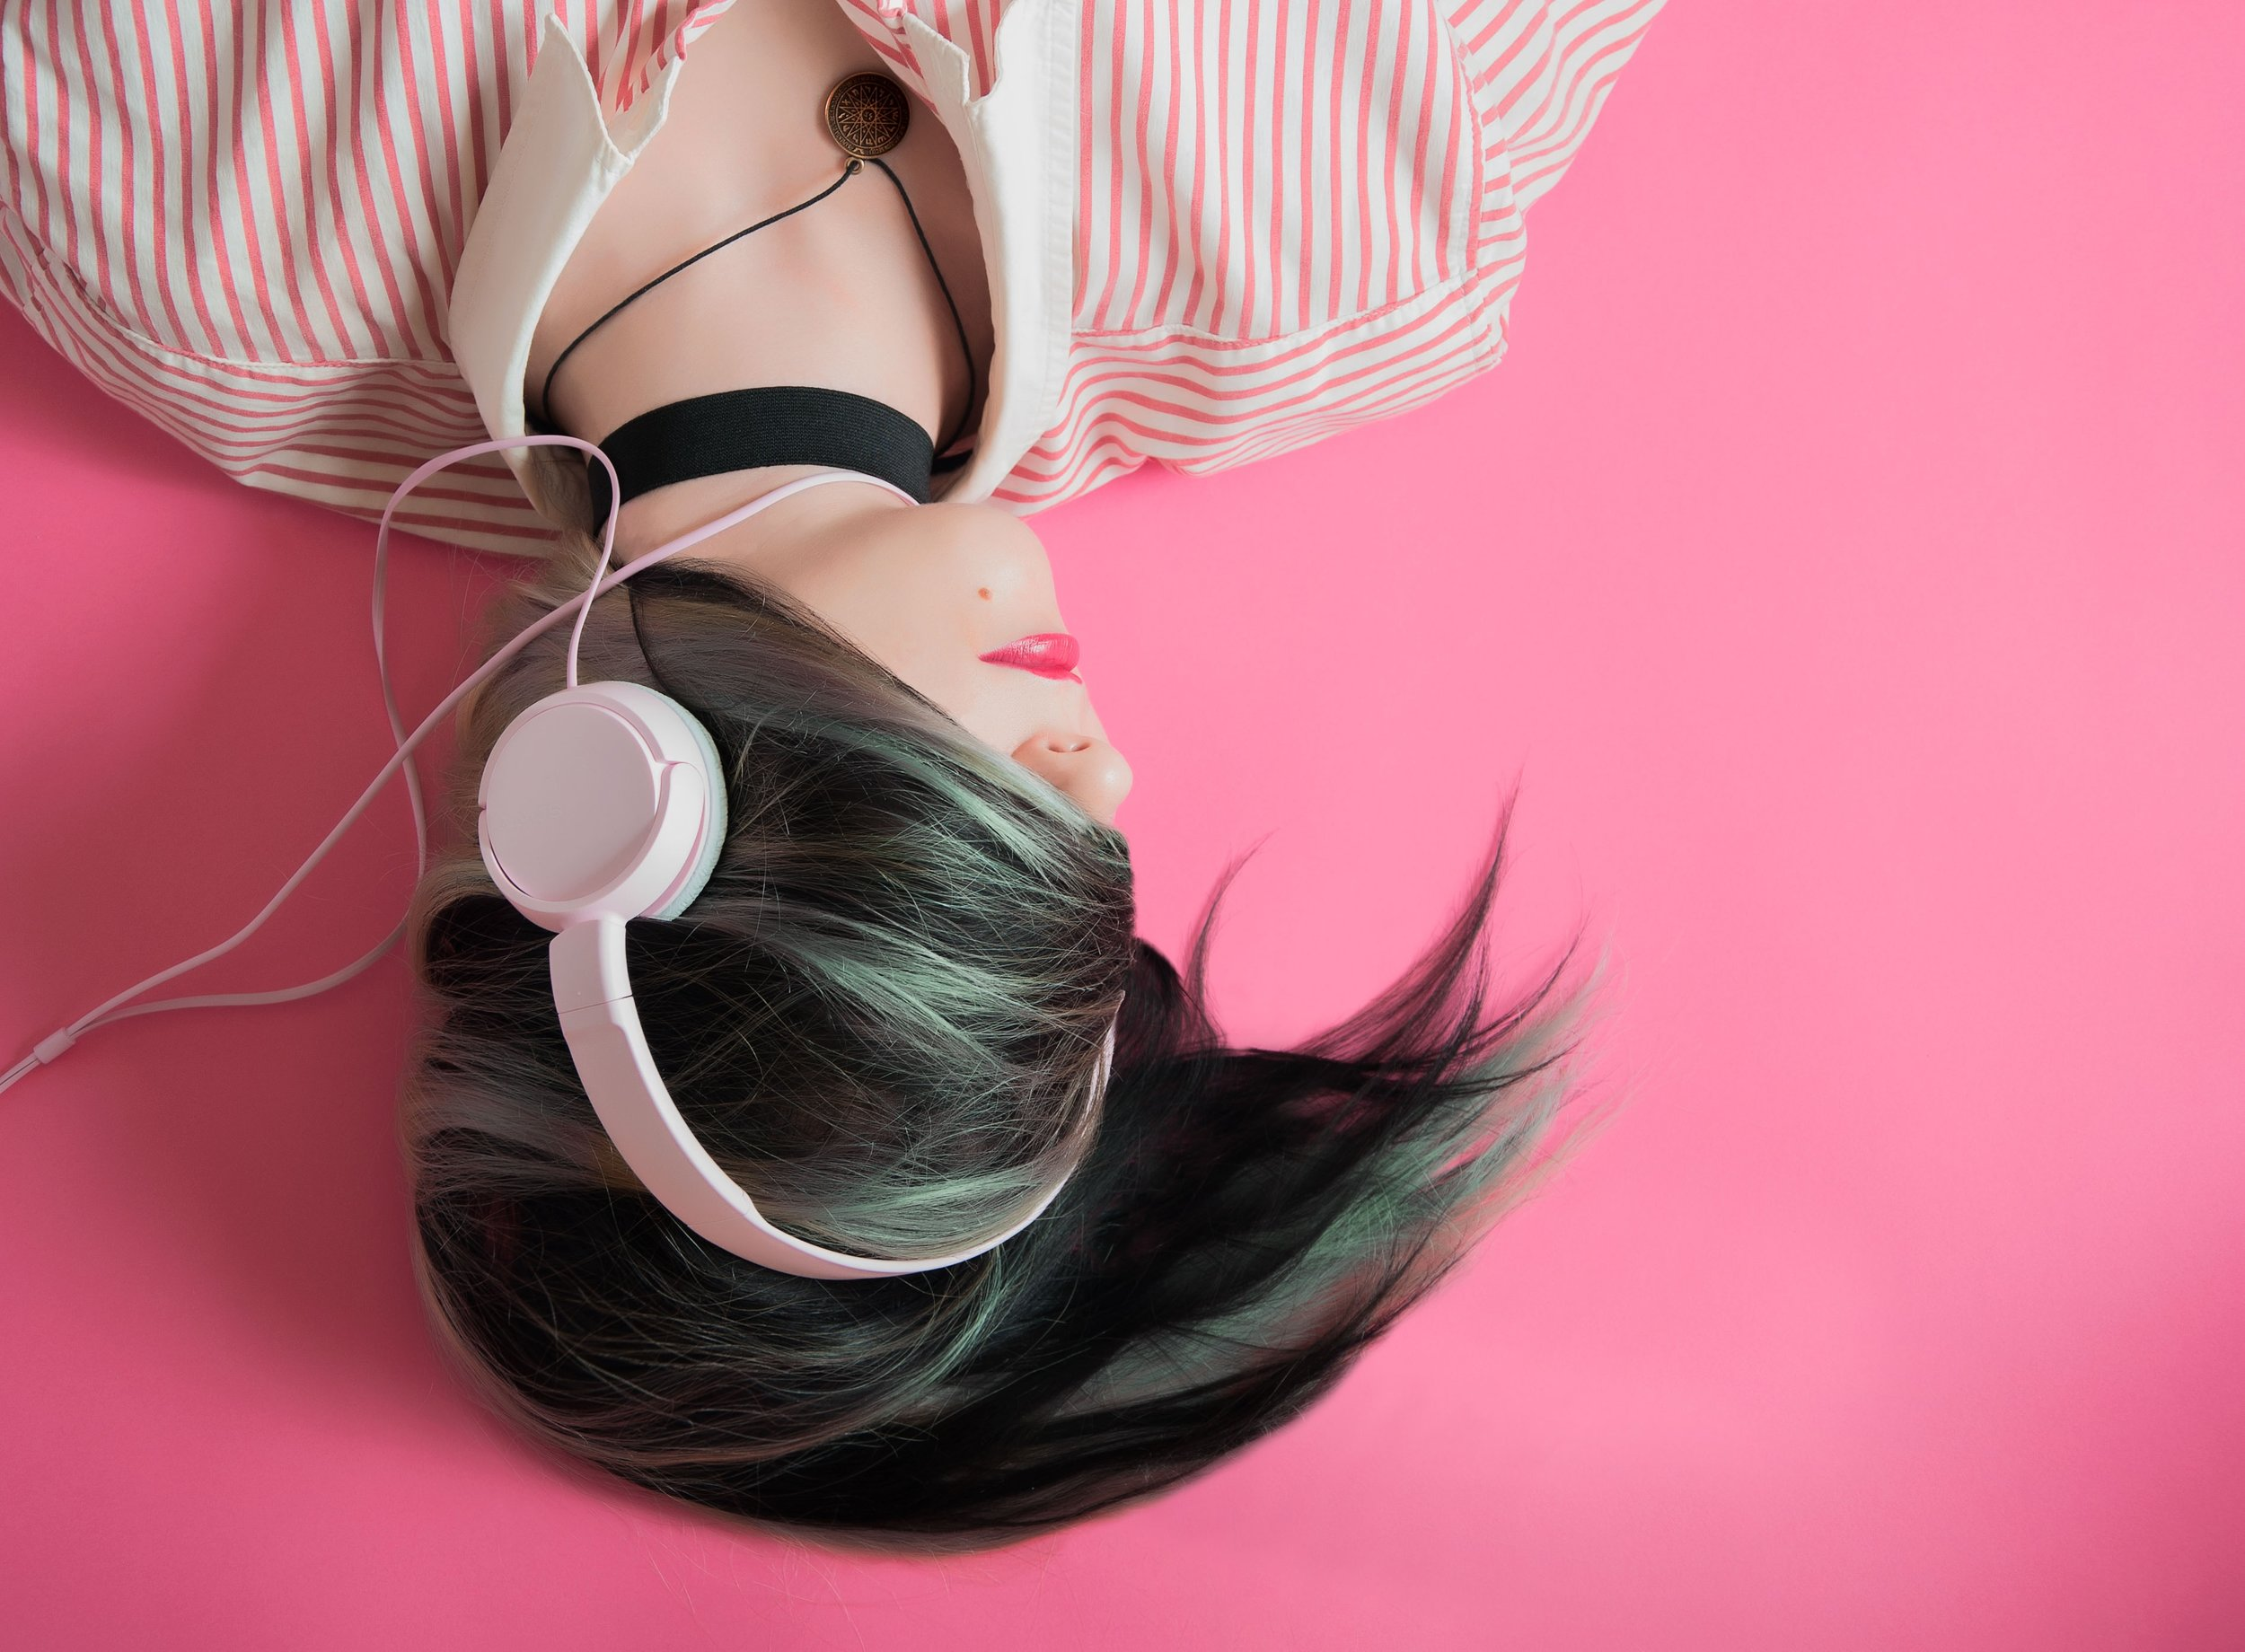 - DefinitionMusic Therapy is a kind of therapy that helps people maintain their mental health through the use of music. (Listening to music and creating music are common activities involved with music therapy.)